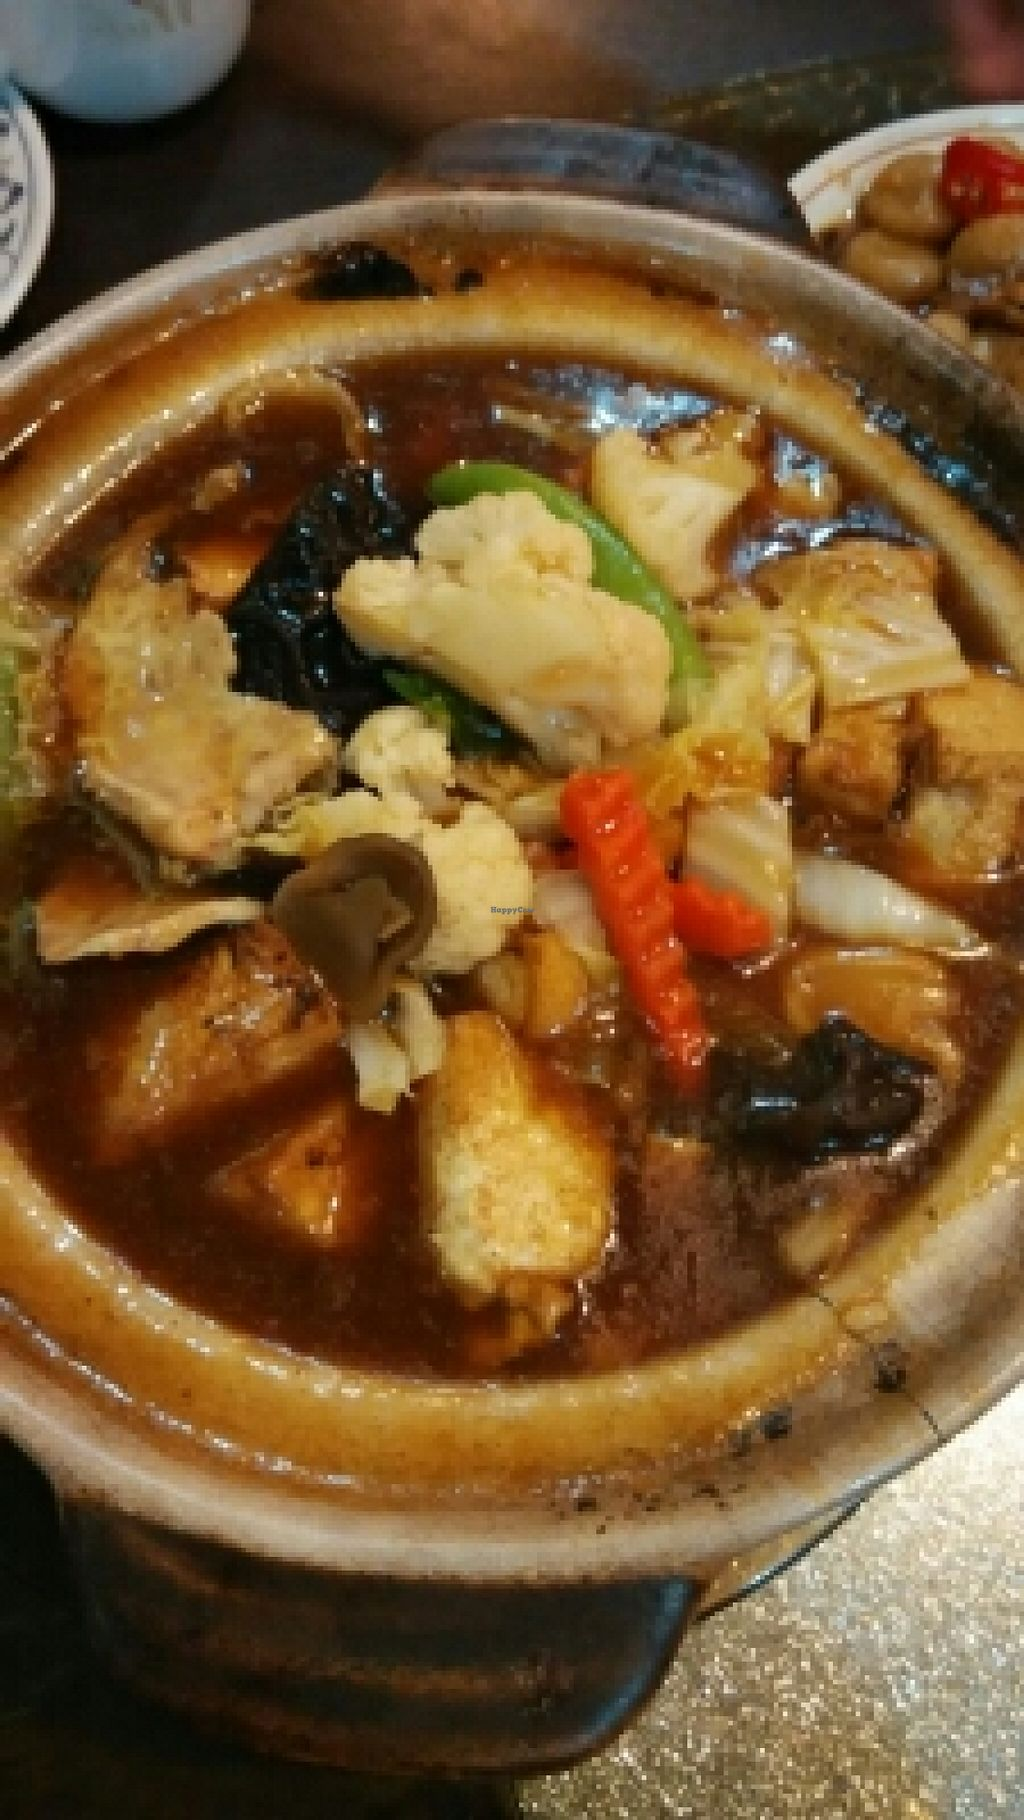 """Photo of Nature Vegetarian Delights  by <a href=""""/members/profile/JimmySeah"""">JimmySeah</a> <br/>claypot Toufu <br/> October 17, 2015  - <a href='/contact/abuse/image/6162/121580'>Report</a>"""